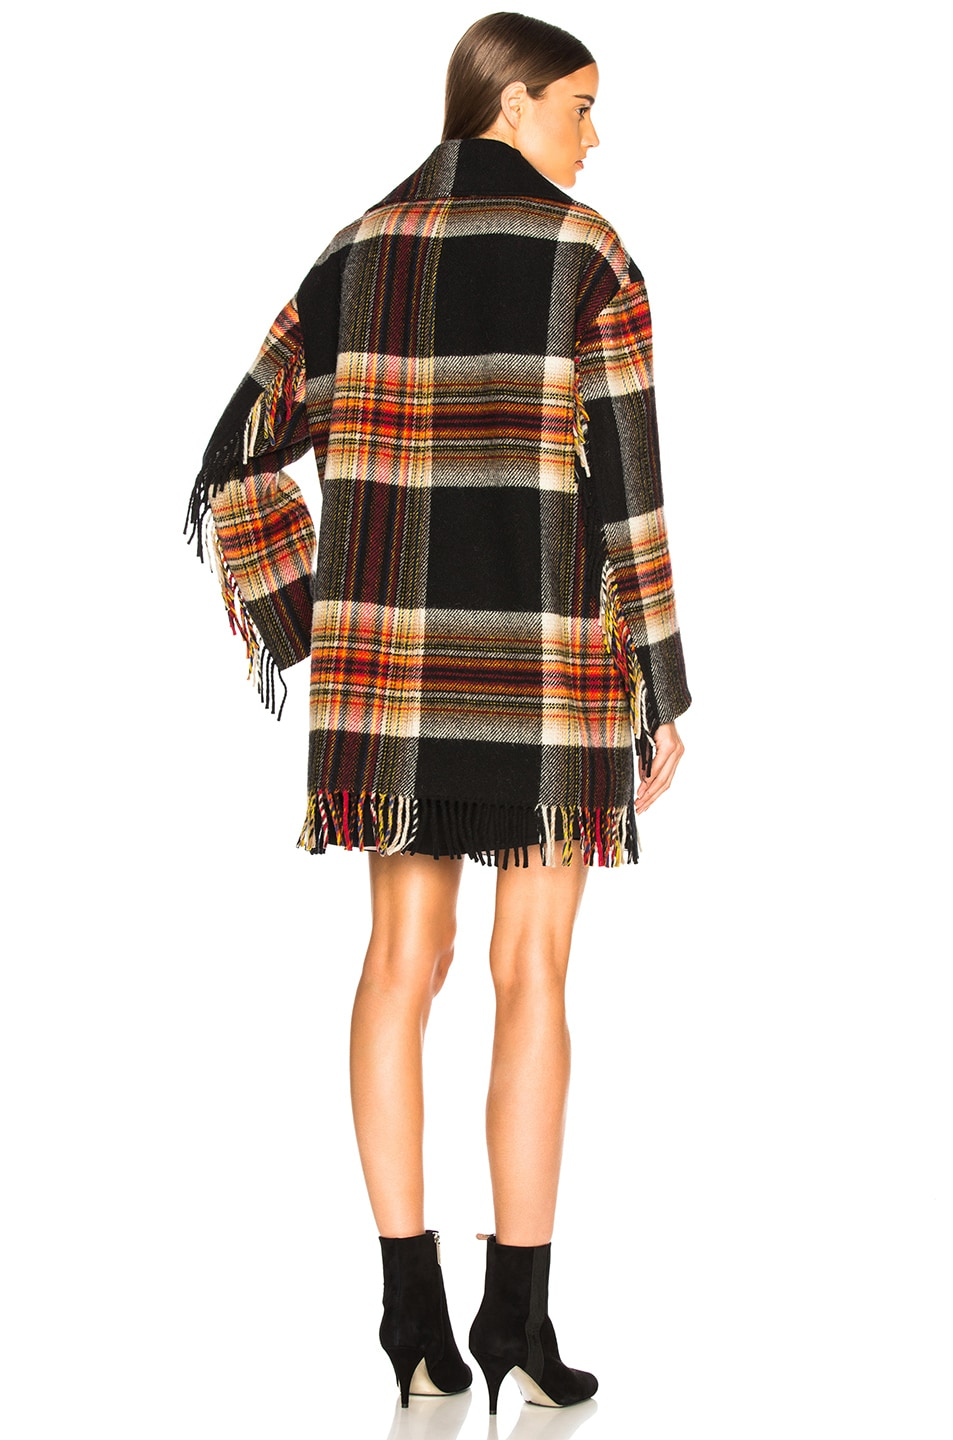 Image 5 of CALVIN KLEIN 205W39NYC Double Breasted Plaid Blanket Coat in Red, Yellow, Blue & Black